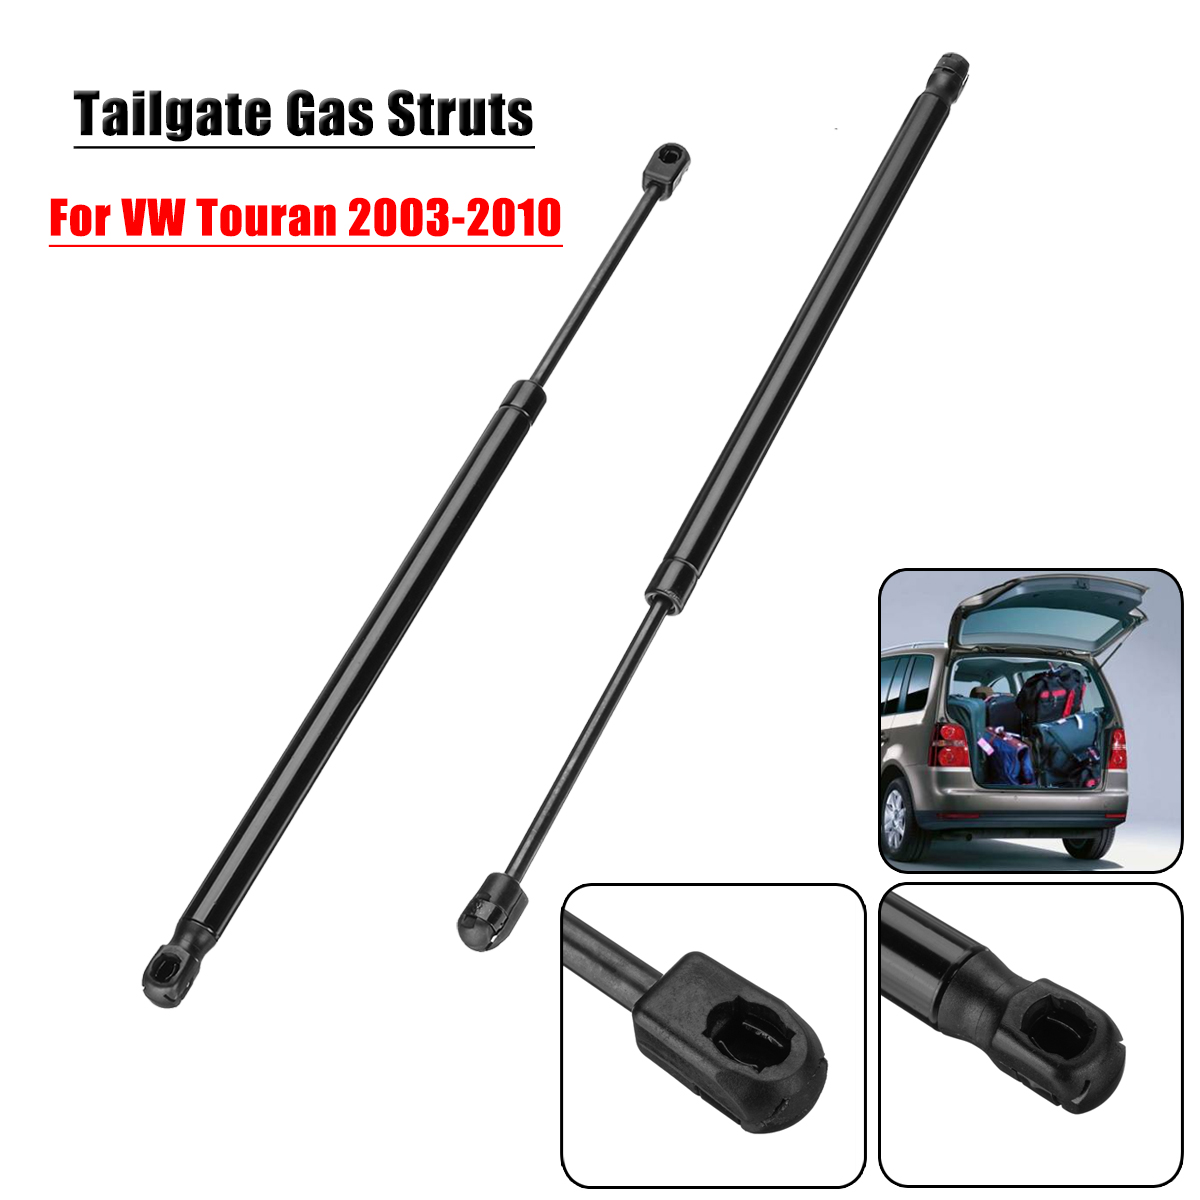 Front Rear Gas Struts Shock Absorber Fit for 2005 2006 2007 2008 2009 2010 2011 2012 2013 2014 Nissan Armada,2004 Nissan Pathfinder 341600 71358 345066 37253 Set of 4 SCITOO Shocks Absorbers